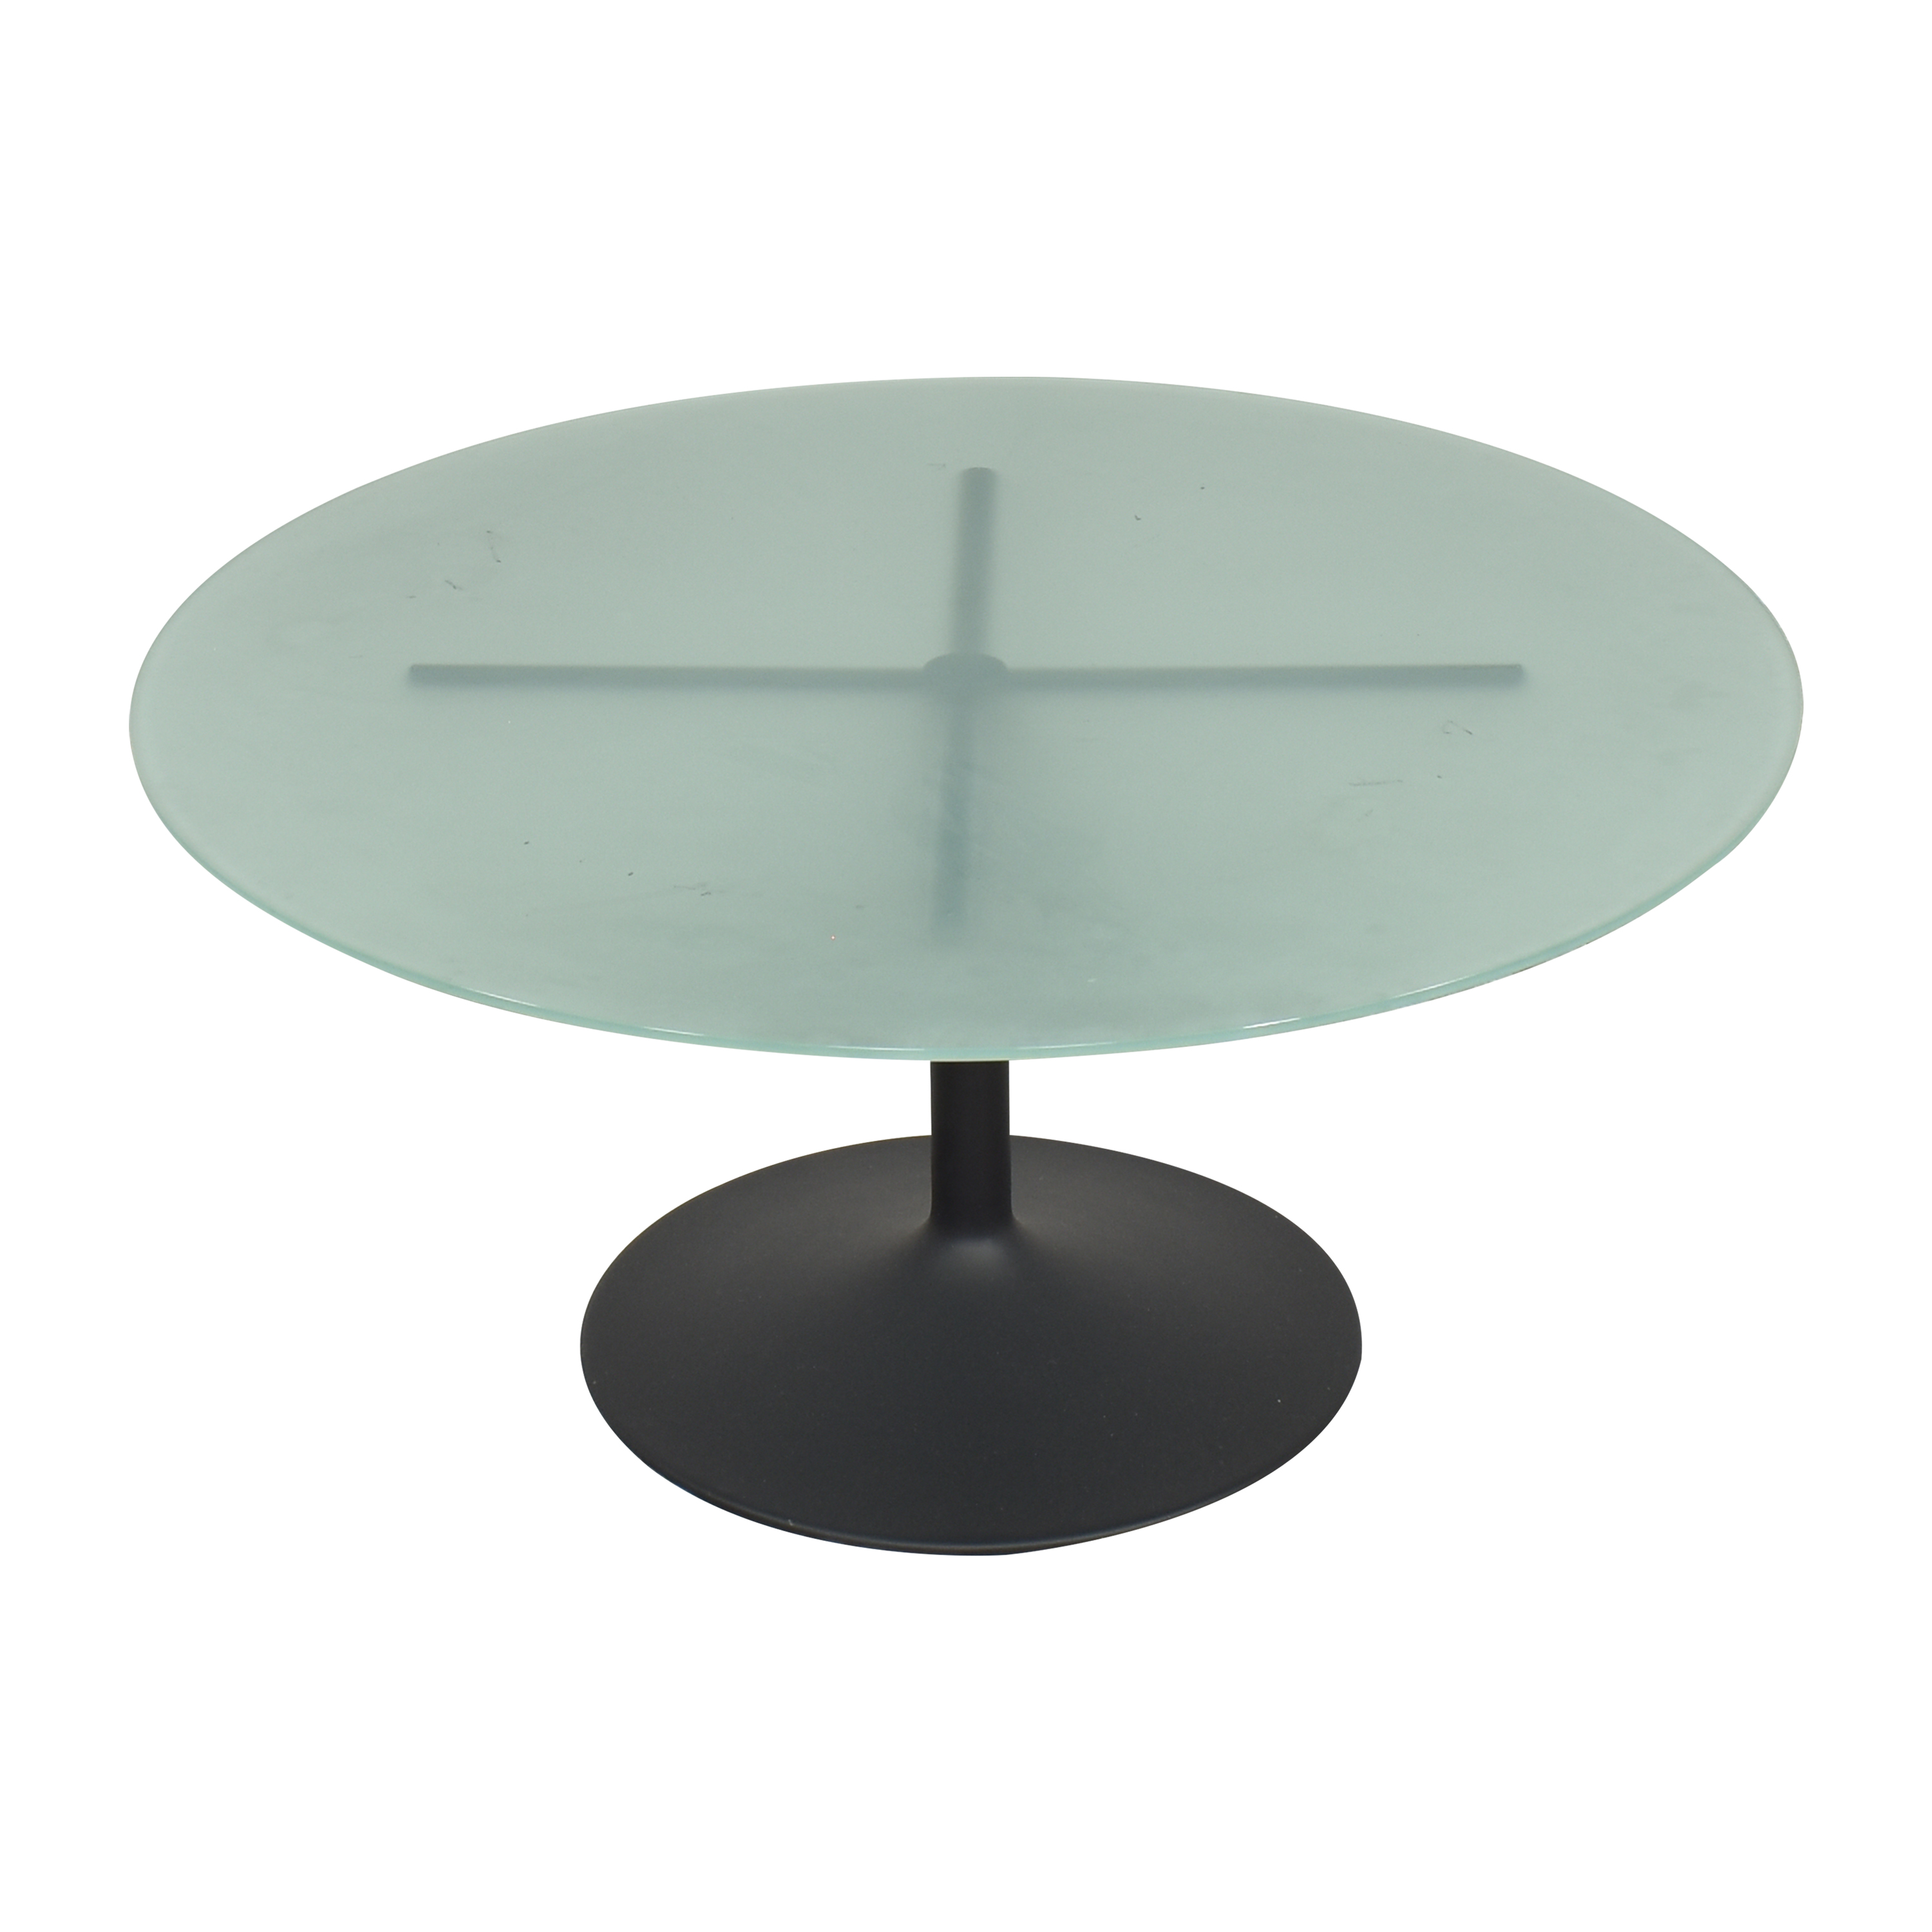 shop Room & Board Aria Round Pedestal Dining Table Room & Board Dinner Tables